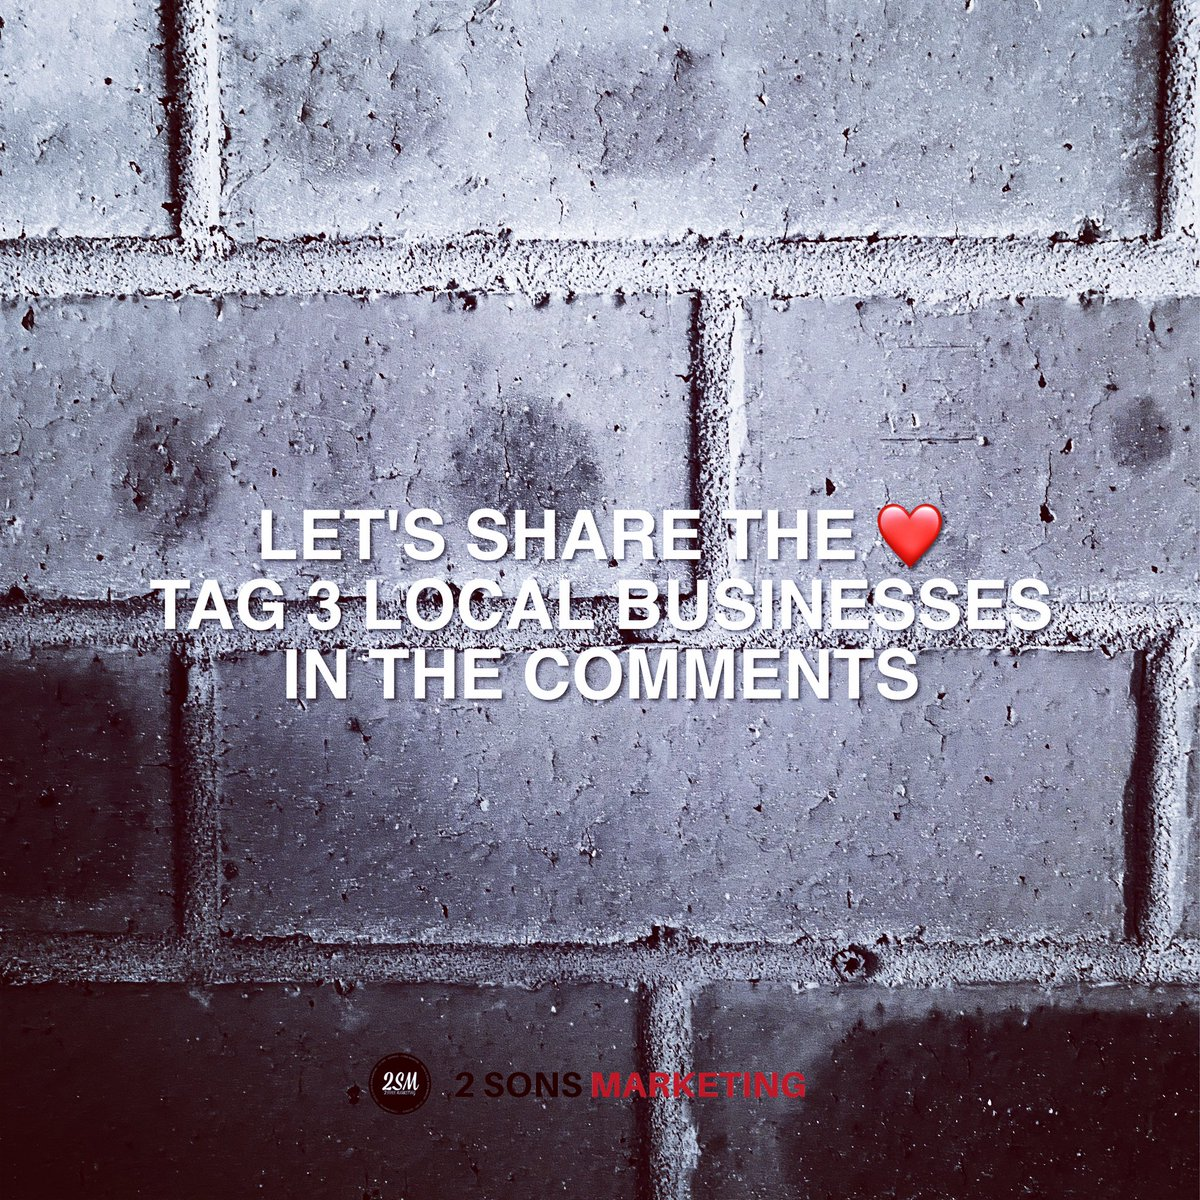 Share the  Tag 3 Local Businesses In the Comments [Like This ]  @Stingraycar @capri_racing @1StopConnection   #businesssupportingbusiness #wereinthistogether #stayhome #australianbusiness #letshelpeachother #sydneysocialmedia #supportaustralianbusiness #wecanandwewillpic.twitter.com/EdDr4pYxZQ